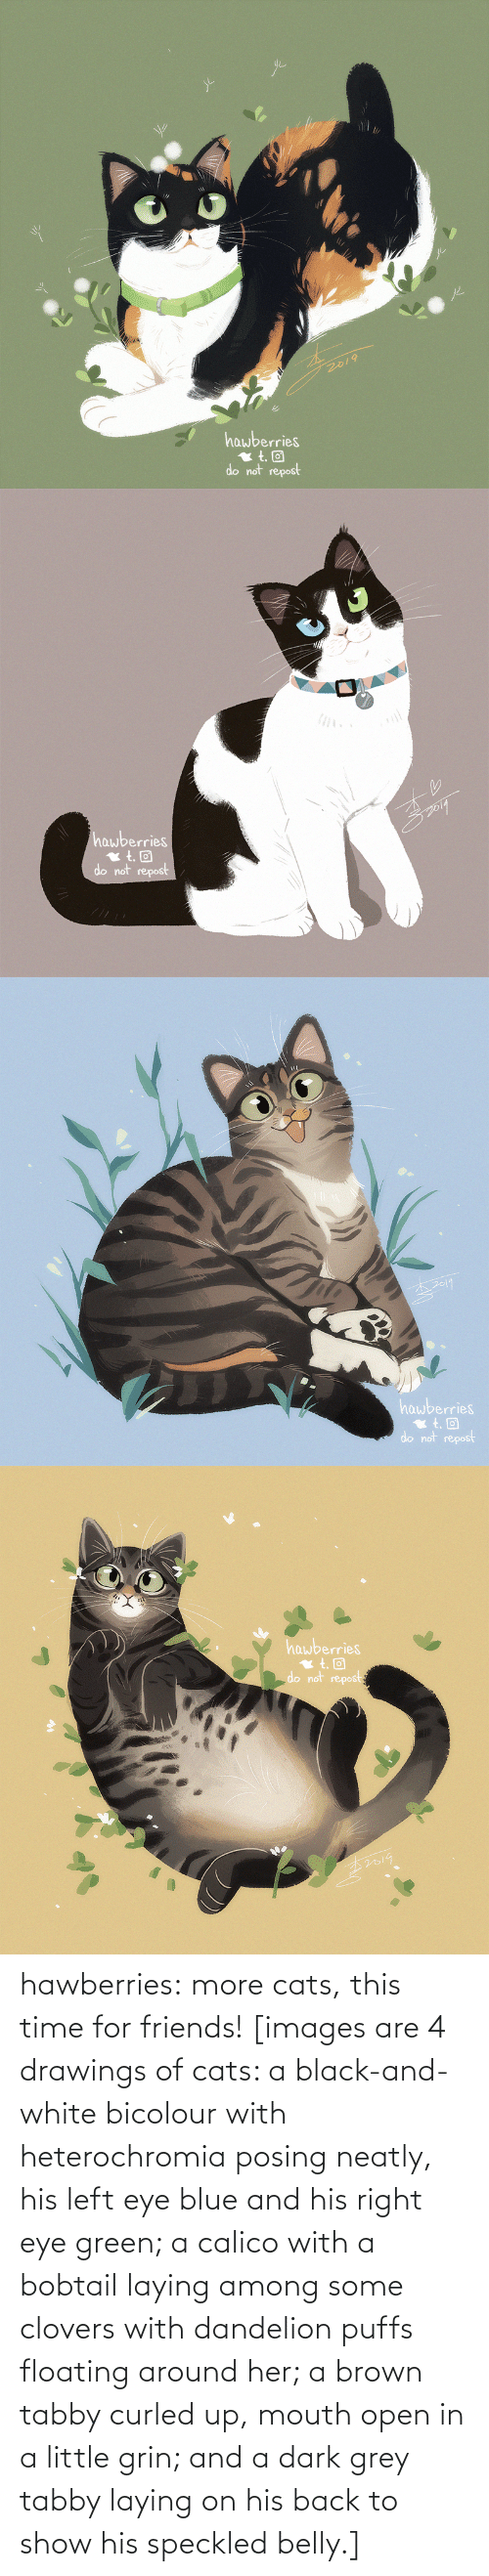 Images: 2019  hawberries  do not repost   hawberries  do not repost   hawberries  do not repost   hawberries  do not repost hawberries: more cats, this time for friends! [images are 4 drawings of cats: a black-and-white bicolour with heterochromia posing neatly, his left eye blue and his right eye green; a calico with a bobtail laying among some clovers with dandelion puffs floating around her; a brown tabby curled up, mouth open in a little grin; and a dark grey tabby laying on his back to show his speckled belly.]